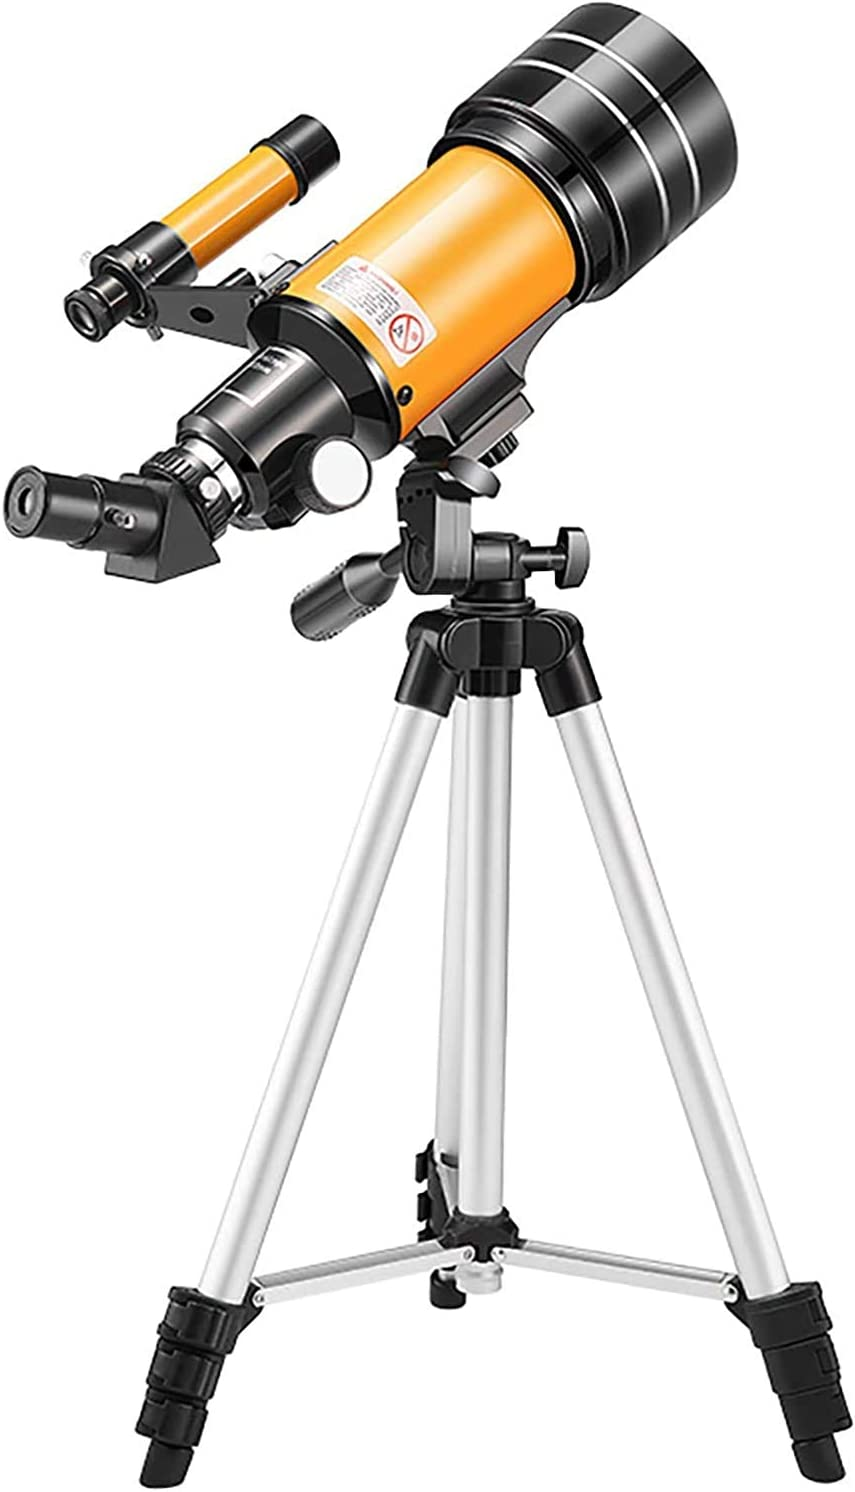 Telescopes for Adults Astronomy Professional, 70mm Aperture Telescope with Tripod, Astronomical Refracting Telescope Gifts for Astronomy Beginners, Telescope with 2 Magnification Eyepieces